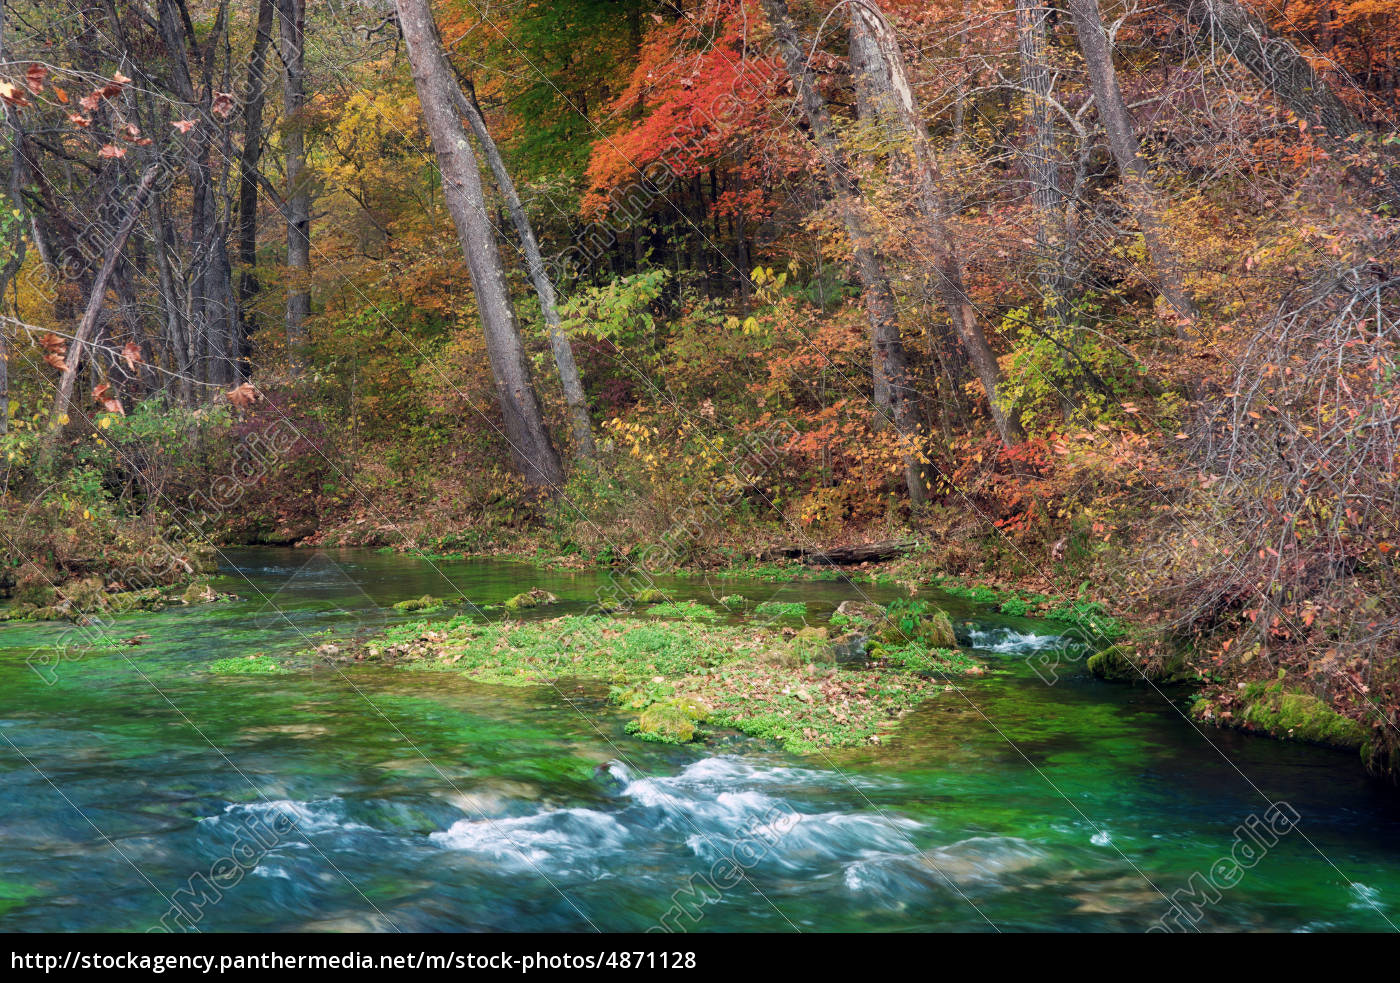 autumn, leaves, and, trees, on, river - 4871128